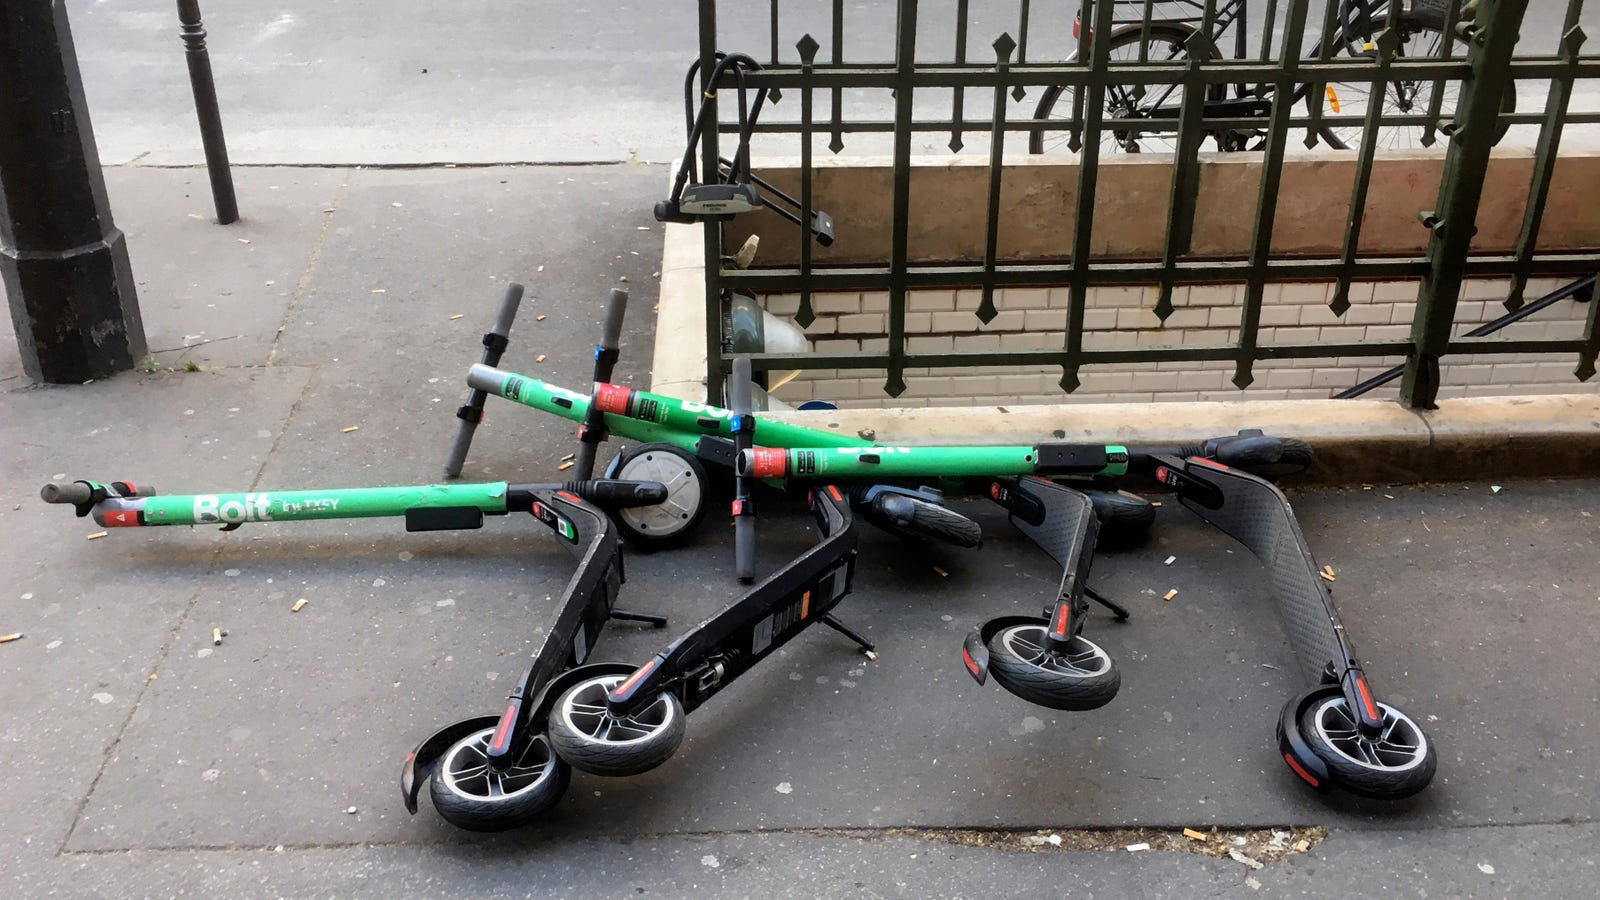 There Is Nothing Funny About The Very Real Threat Of Scooters Causing Mayhem During Hurricane Dorian